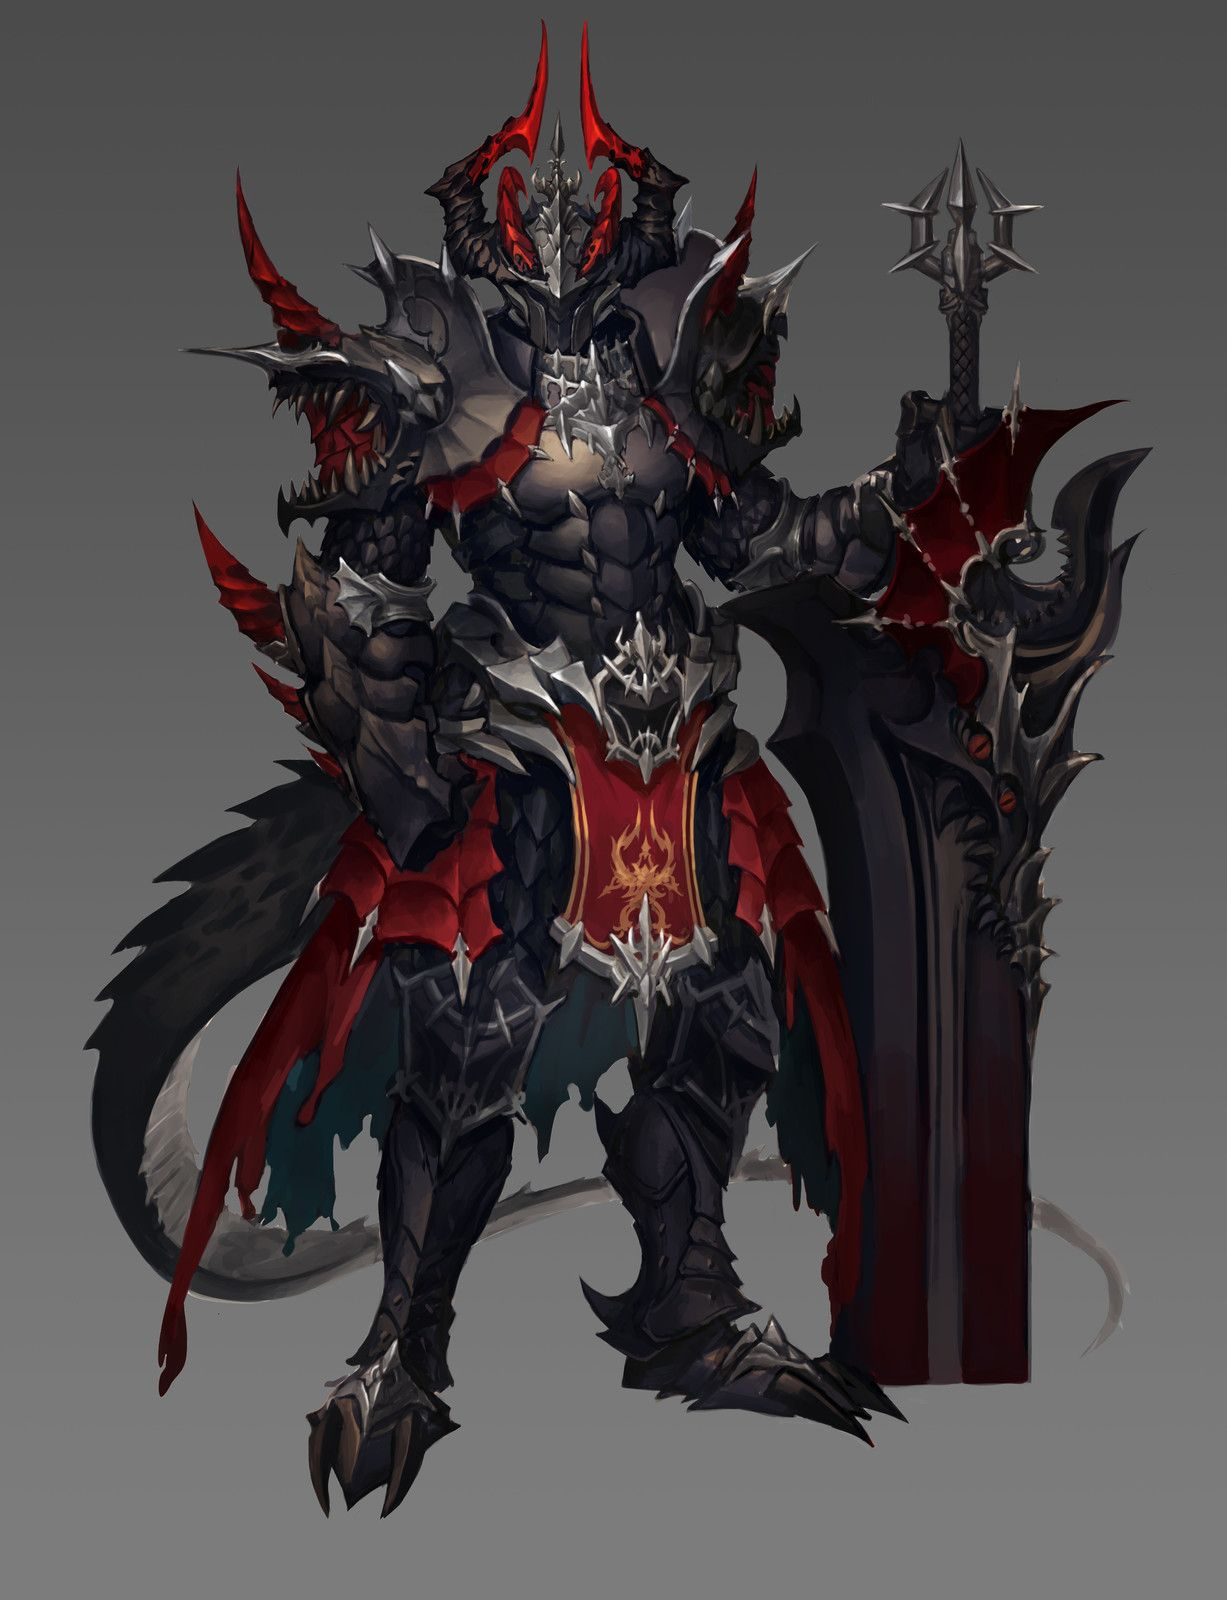 Knight Armond Lee On Artstation At Https Www Artstation Com Artwork Qa0gjp Concept Art Characters Fantasy Character Design Fantasy Armor Starting around level 50, dragonscale armor pieces can be found, very rarely, as random loot from chests and containers. fantasy character design fantasy armor